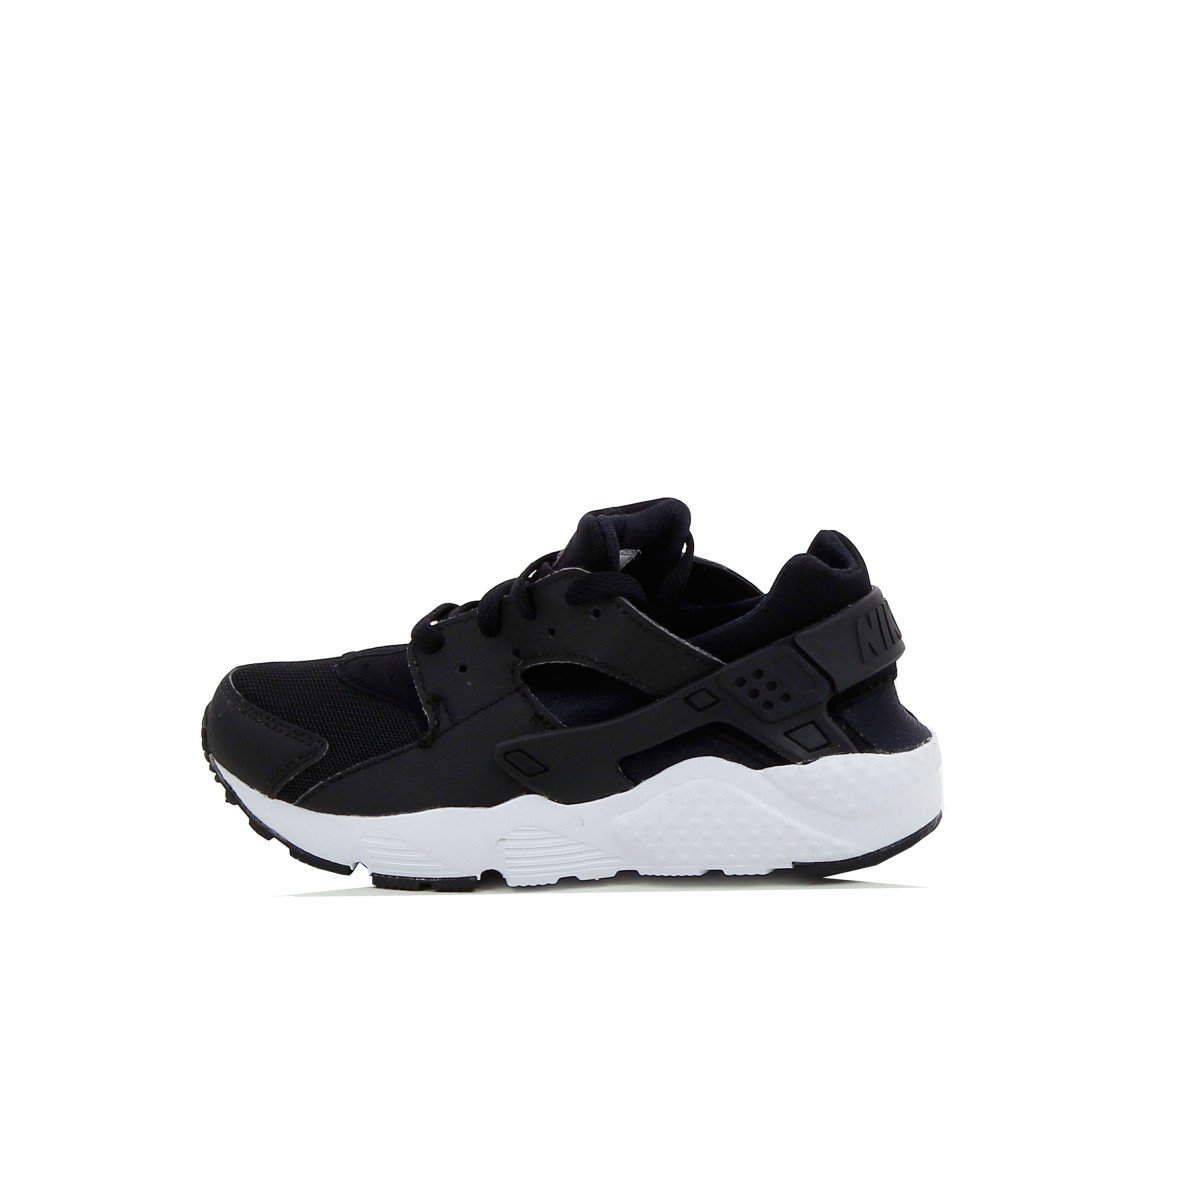 Nike Huarache Run Little Kids Style: 704949-011 Size: 2.5 Y US